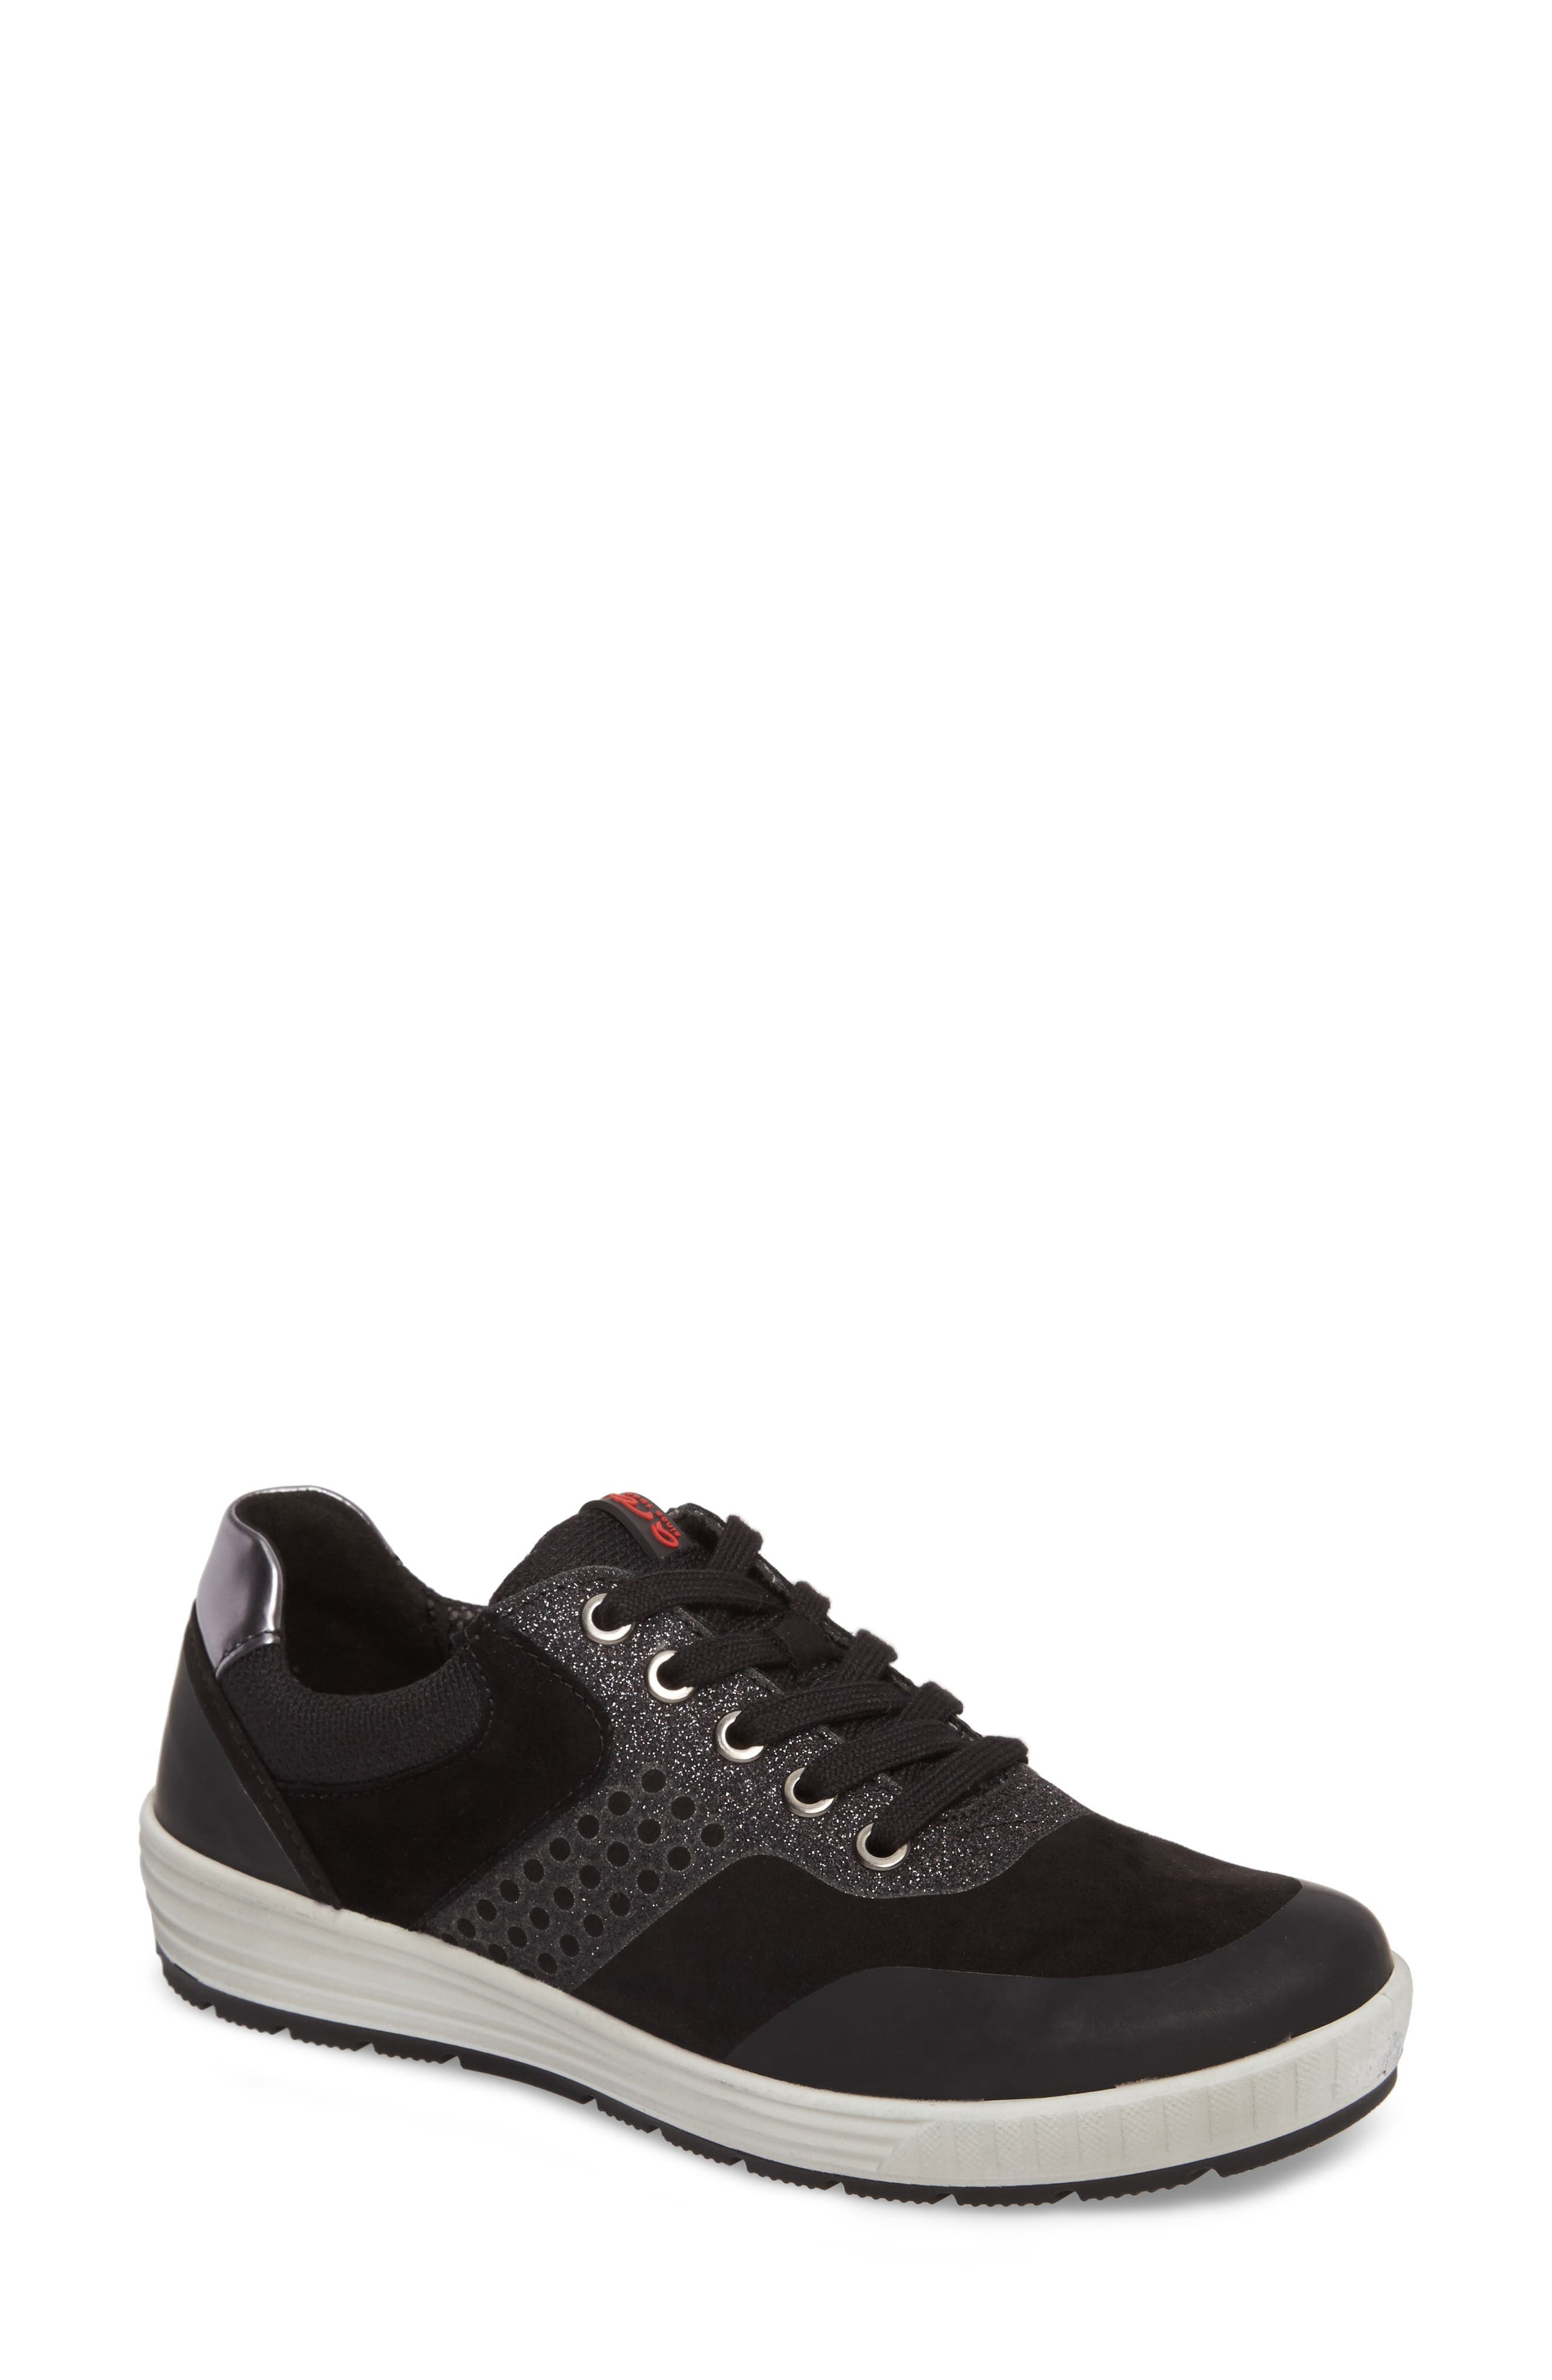 Natalie Sneaker,                         Main,                         color, Black Leather